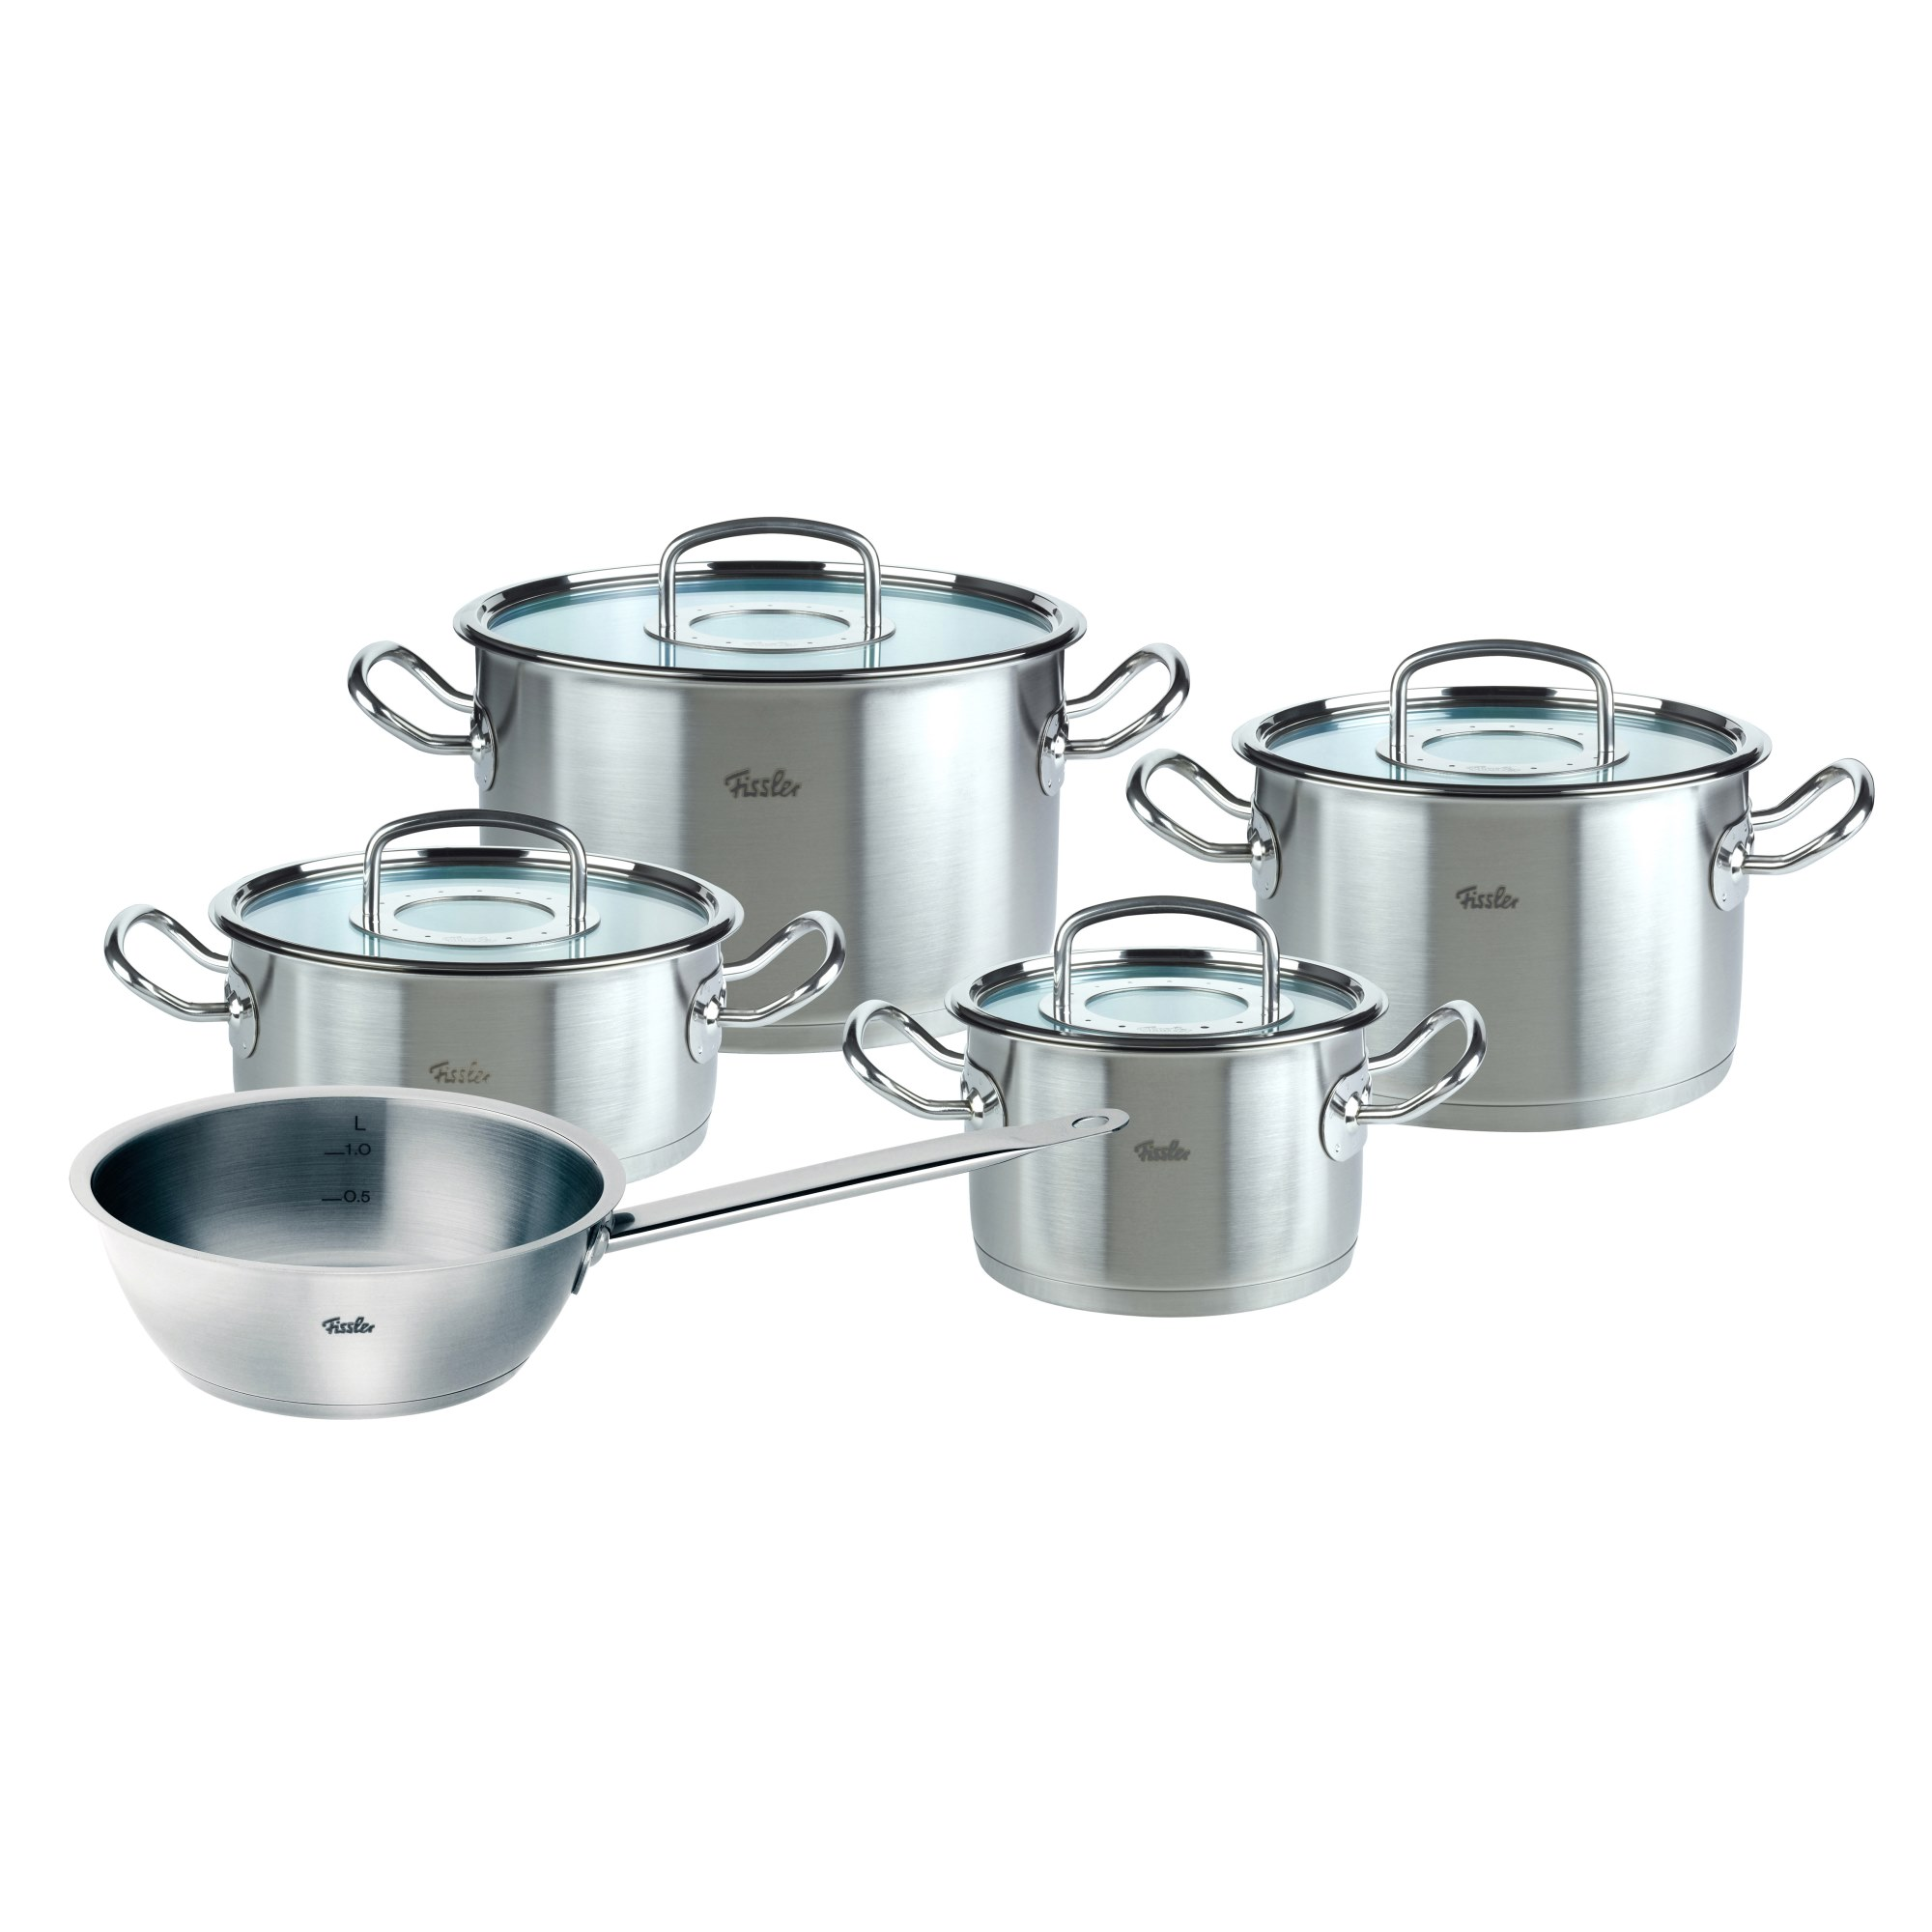 fissler topf set original profi collection 5 teilig mit glasdeckel. Black Bedroom Furniture Sets. Home Design Ideas